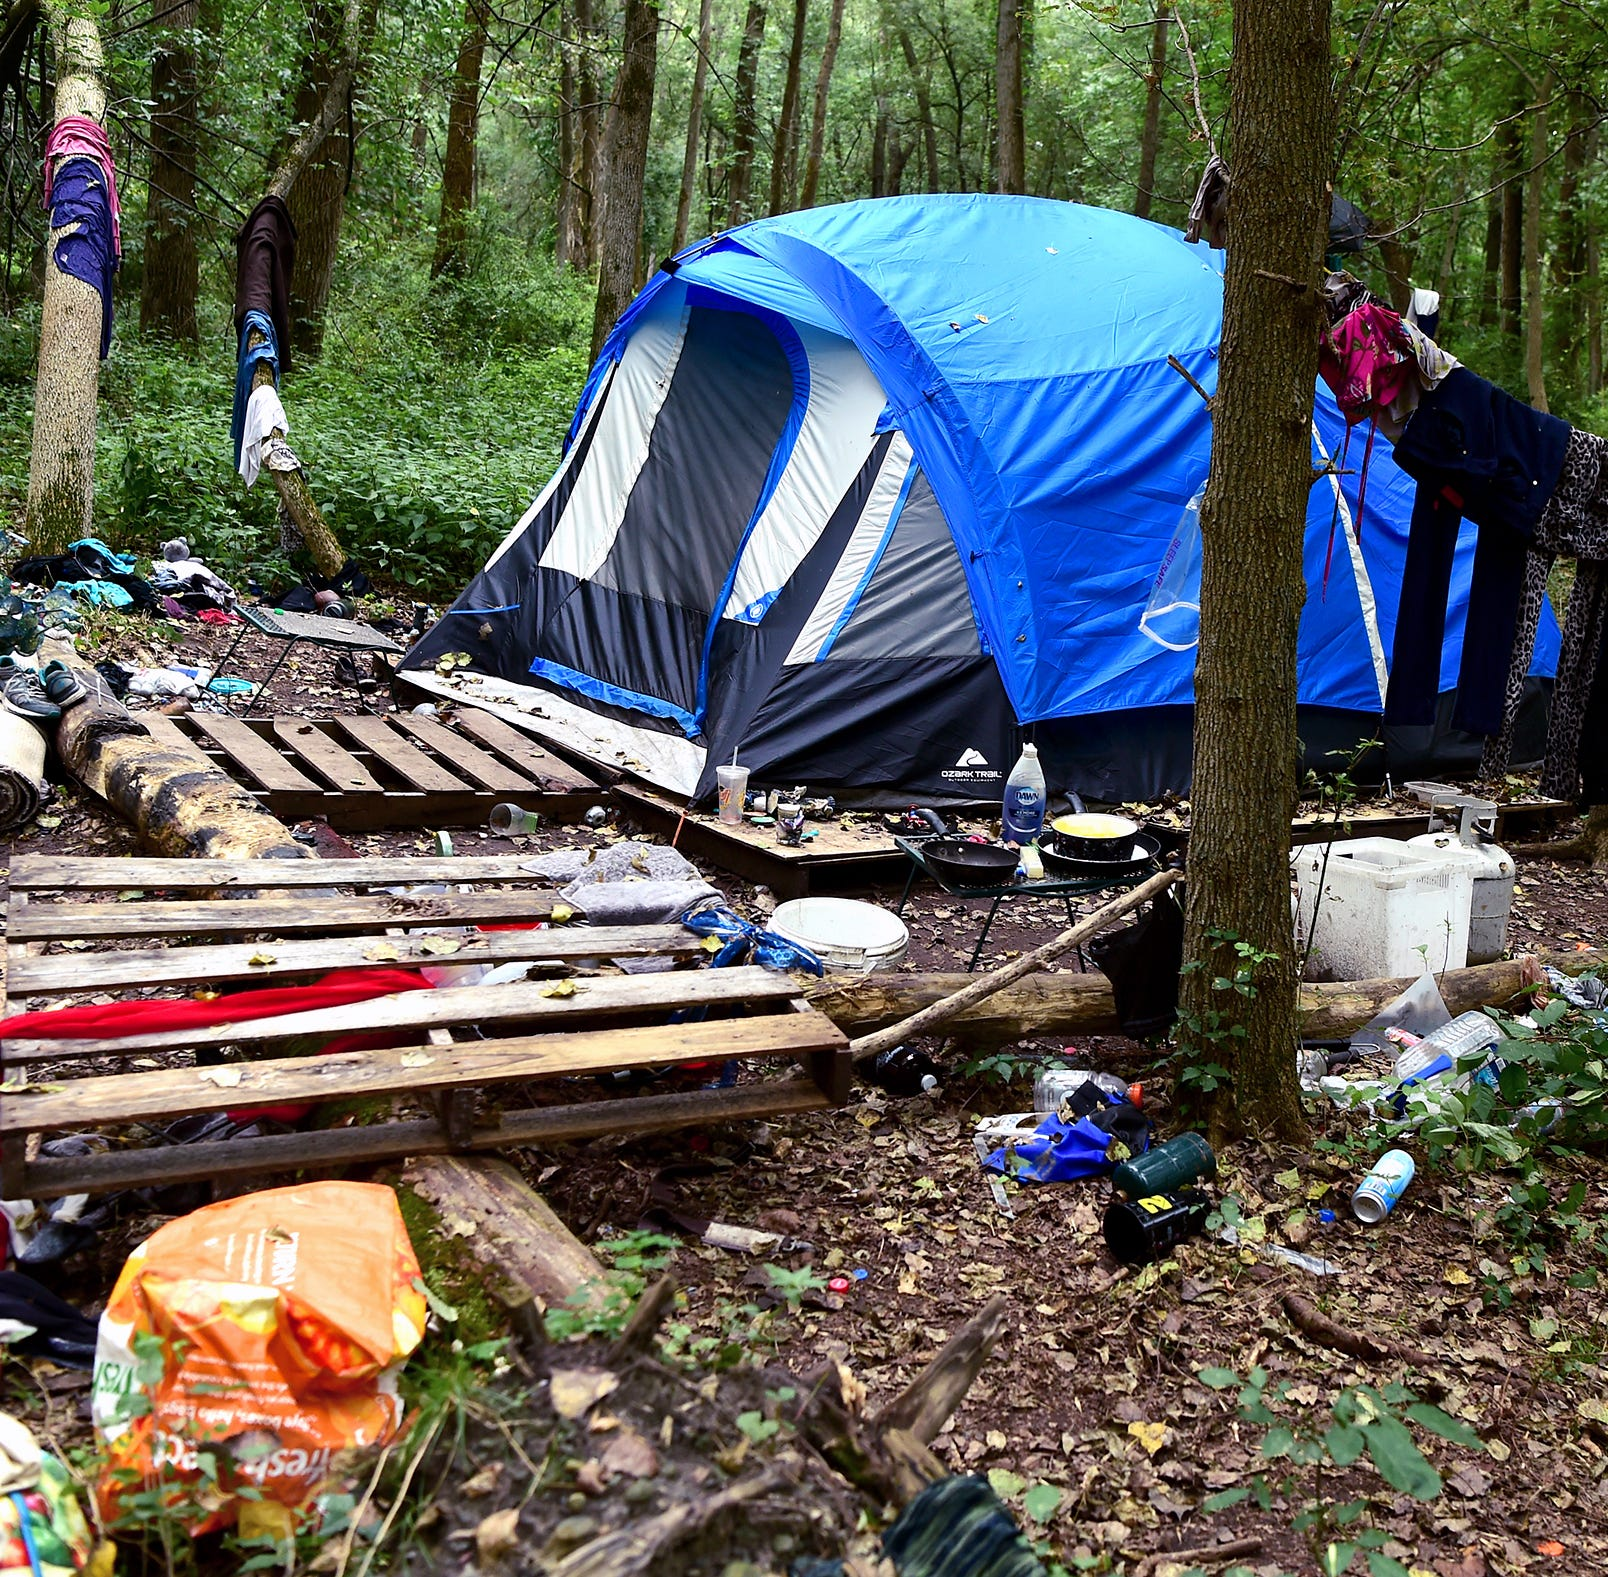 Two fires being investigated at Ithaca's homeless camp, The Jungle